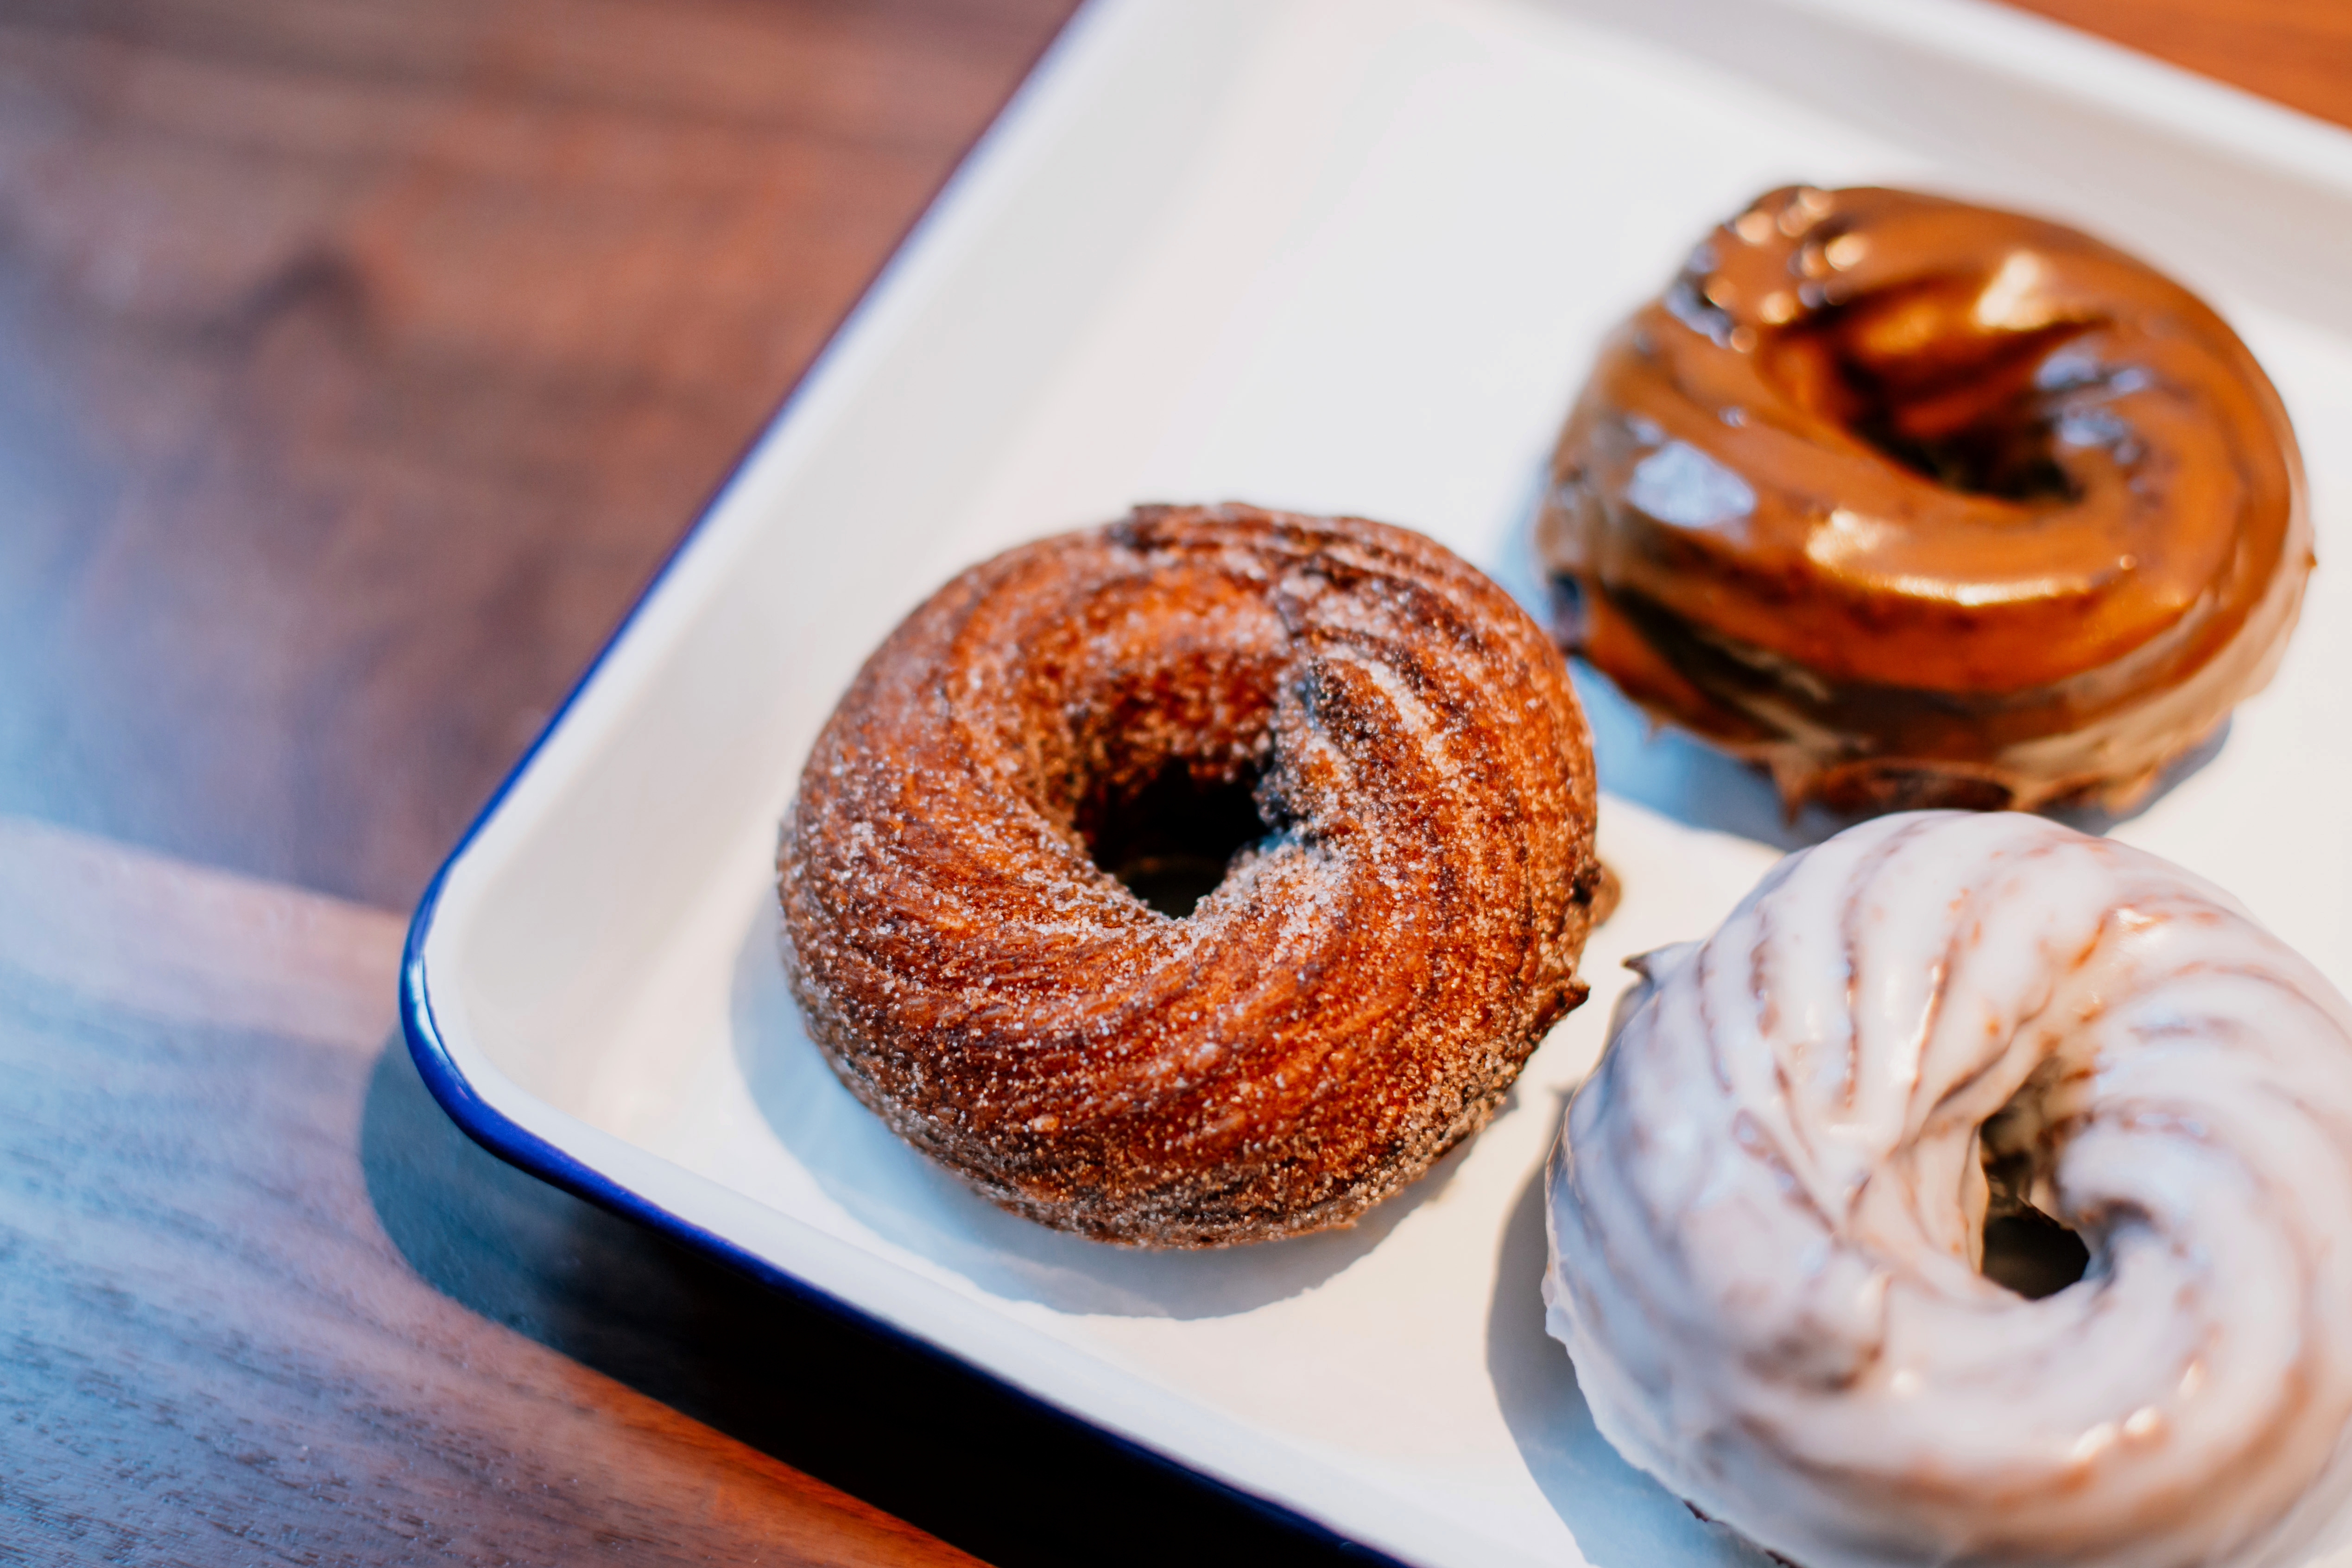 Cinnamon sugar, maple, and glazed crullers at Daily Provisions